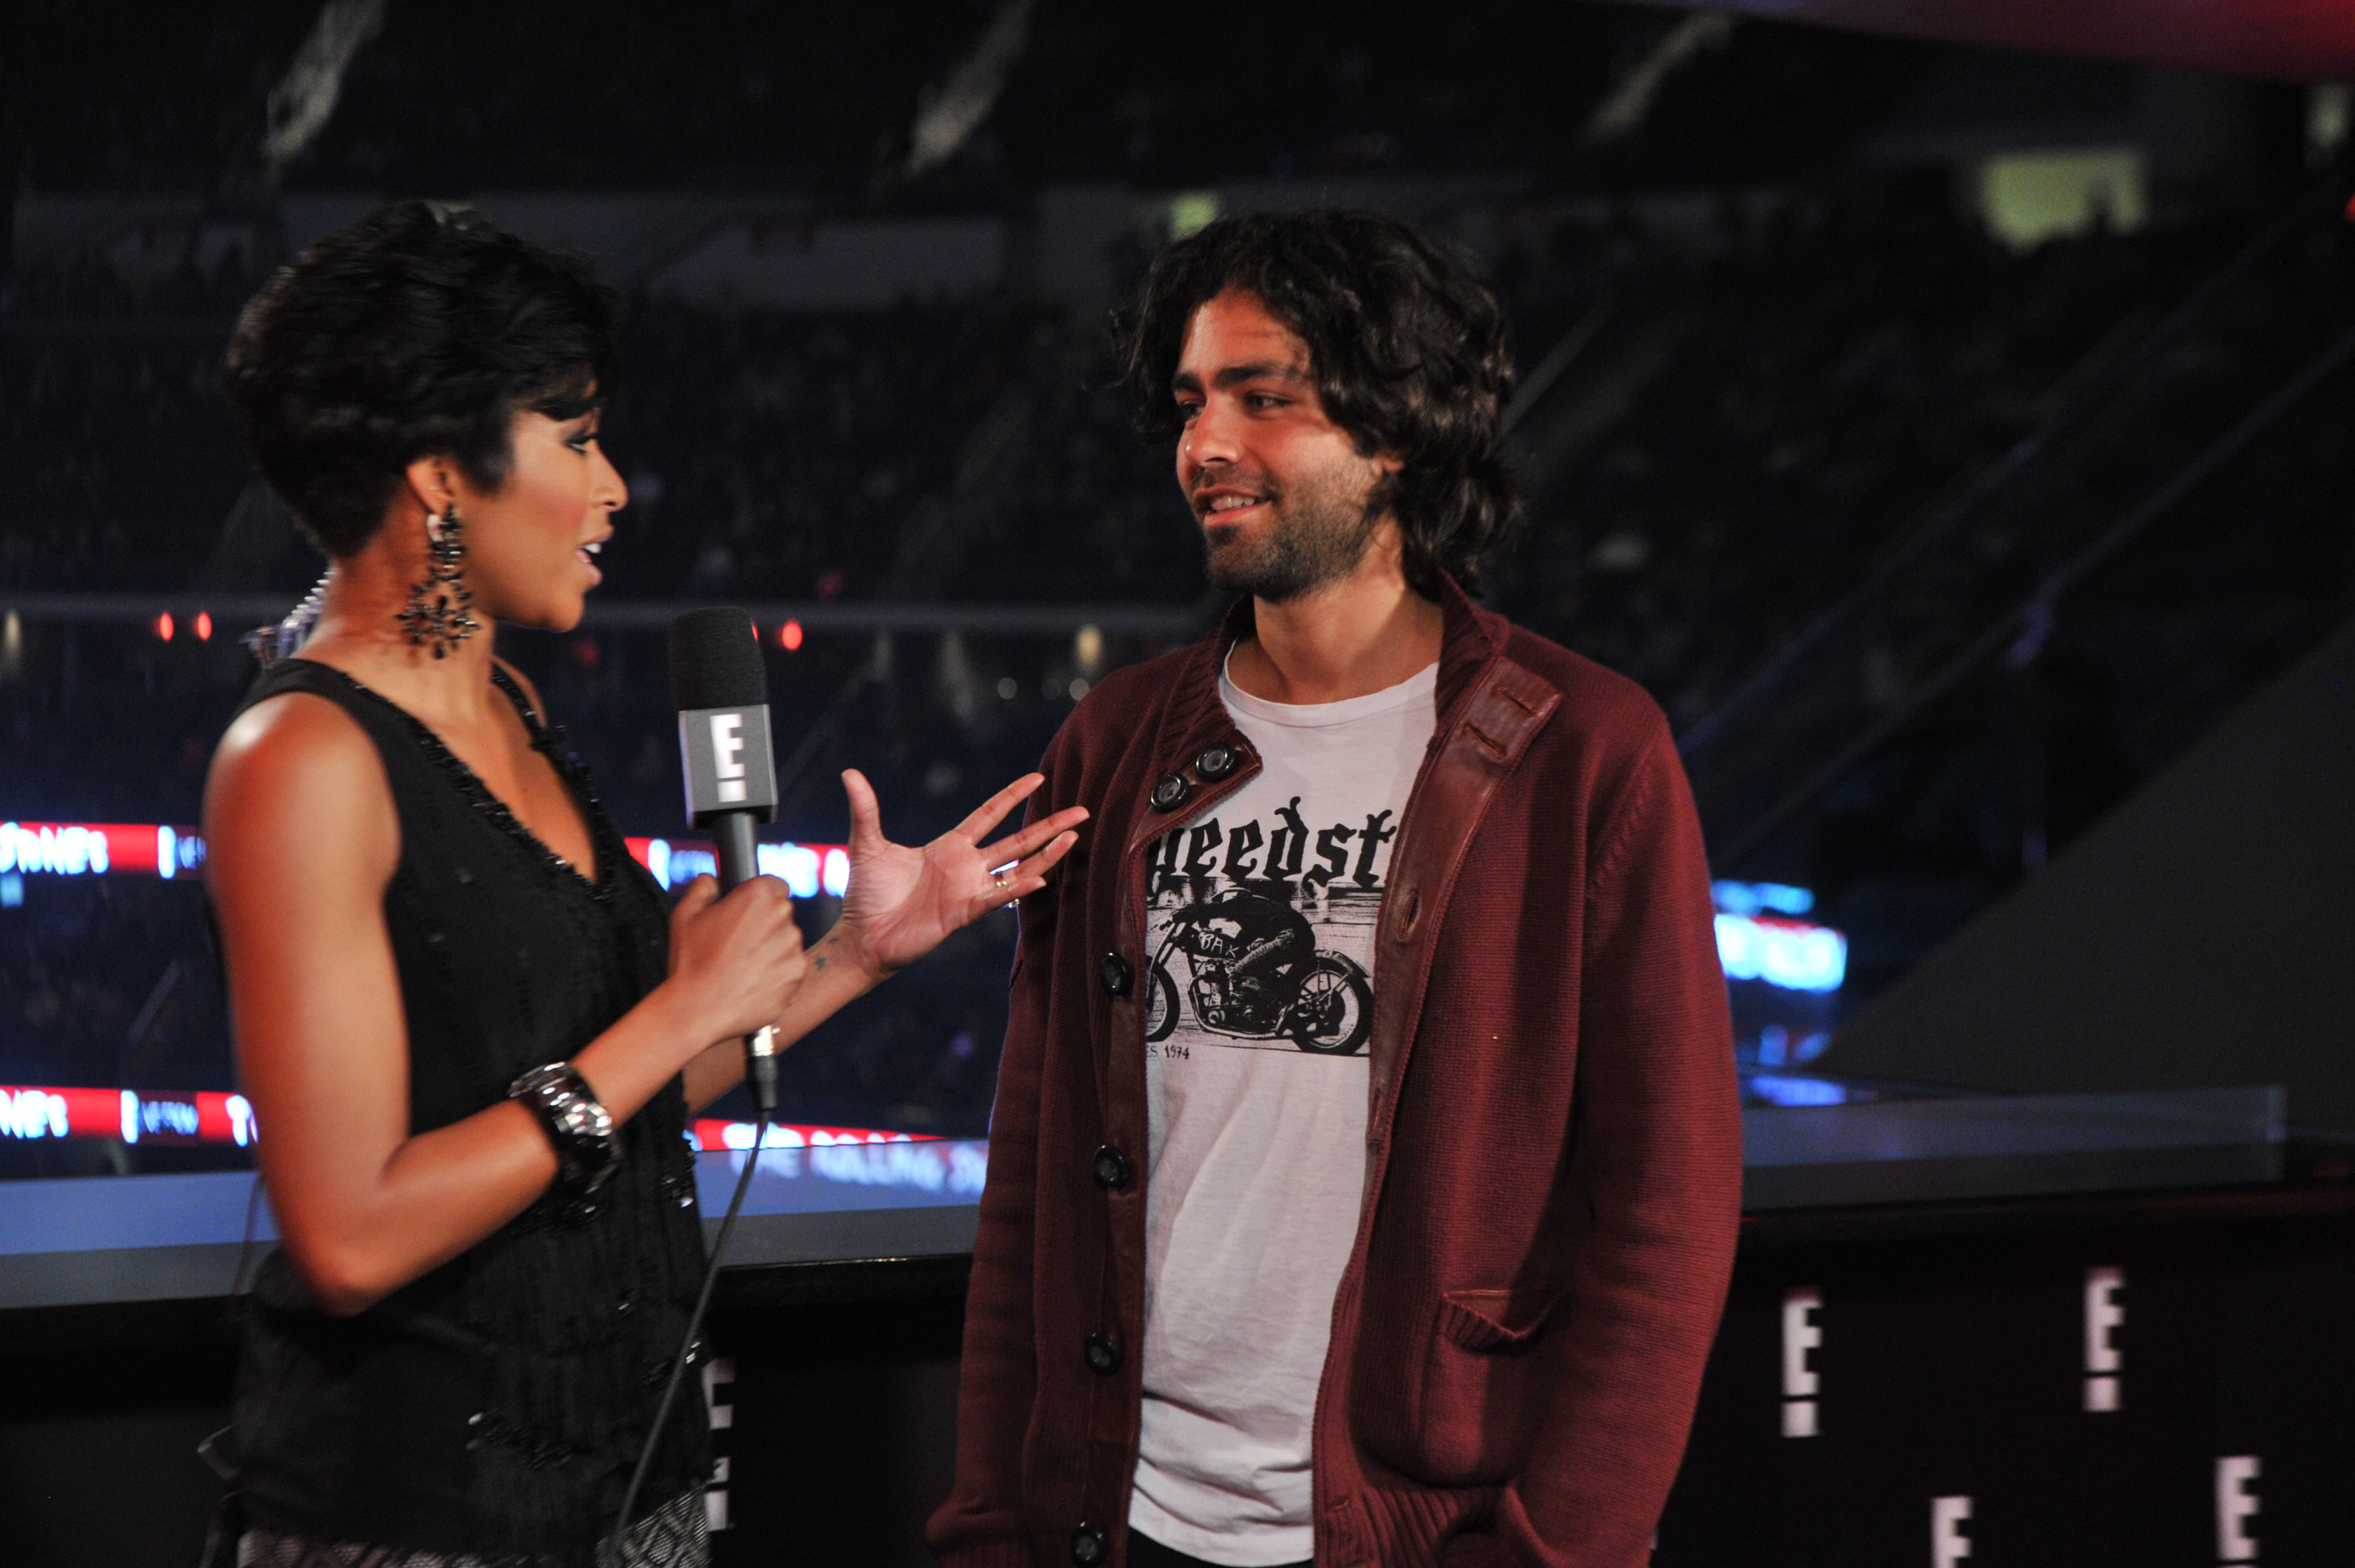 Adrien Grenier being interviewed at the WWE/E! Live pre show for the Rolling Stones concert at the Prudential Center on Dec. 15 in Newark. N.J. (WWE)